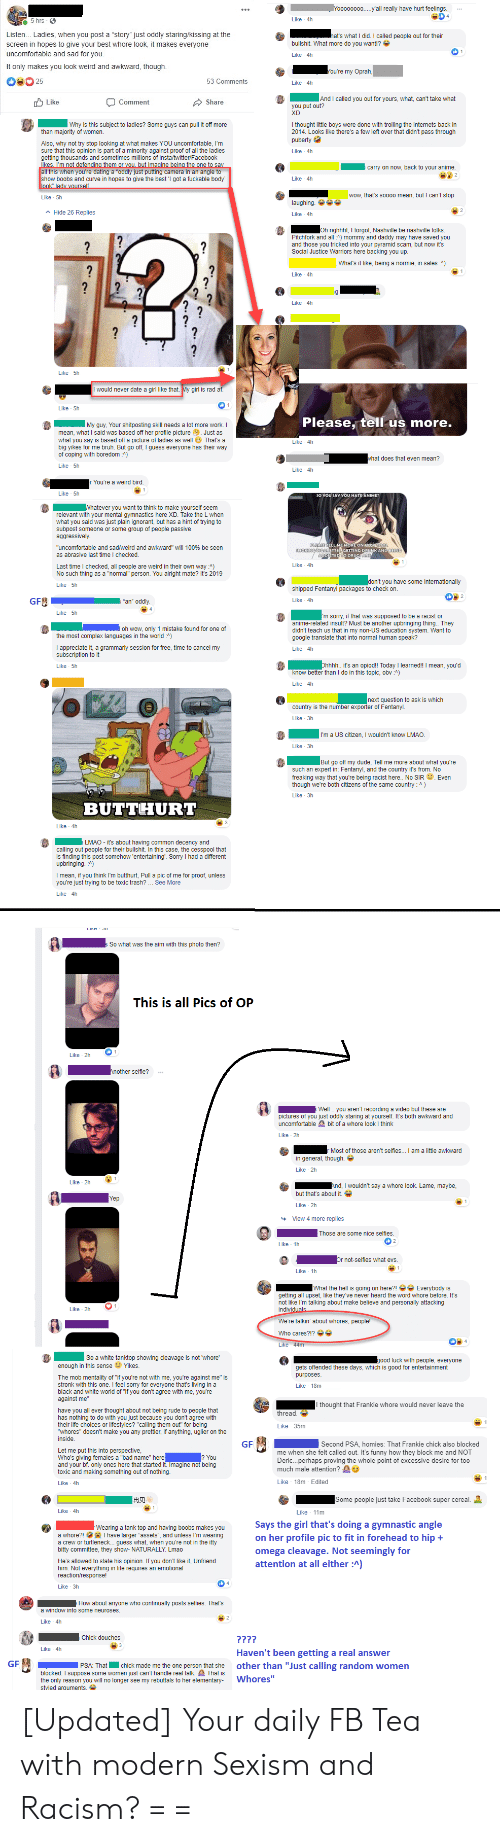 """What The Hell Is Going On Here: Yooooooo0y'all really have hurt feelings  Like 4h  5 hrs  Listen... Ladies, when you post a """"story"""" just oddly staring/kissing at the  screen in hopes to give your best whore look, it makes everyone  uncomfortable and sad for you.  hat's what I did. I called people out for their  bullshit. What more do you want!?  Like 4h  It only makes you look weird and awkward, though.  You're my Oprah  25  53 Comments  Like 4h  And I called you out for yours, what, can't take what  Like  Comment  Share  u put out?  Why is this subiect to ladies? Some quys can pull it off more  thought little boys were done with trolling the internets back in  2014. Looks like there's  few left over that didn't pass through  than majority of women.  puberty  Also, why not try stop looking at what makes YOU uncomfortable, I'm  minority against proof of all the ladies  insta/twitter/Facebook  sure that this opinion is part of  getting thousands and sometimes millions  Like 4h  likes I'm not defending them or VOLI. but imagine beina the one to sav  all this when you're dating a """"oddly just putting camera in an angle to  curve in hopes to give the best 'l got a fuckable body  carry on now, back to vour anime.  2  Like 4h  look"""" lady vourself.  wow, that's soooo mean, but I can't stop  Like 5h  laughing  Hide 26 Replies  Like 4h  Oh righhht, I forgot, Nashville be nashville folks.  Pitchfork and all:) mommy and daddy may have saved you  and those you tricked into your pyramid scam, but now it's  Social Justice Warriors here backing you up.  ?  ?  What's it like, being a normie, in sales )  Like 4h  ?  Like 4h  ?  ?  ?  Like 5h  I would never date a girl like that.My girl is rad af.  Like 5h  Please, tell us more.  My guy, Your shitposting skill needs a lot more work. I  mean, what I said was based off her profile picture Just as  what you say is based off a picture of ladies as well That's a  big yikes for me bruh. But go off, I guess everyone has their way  of coping w"""